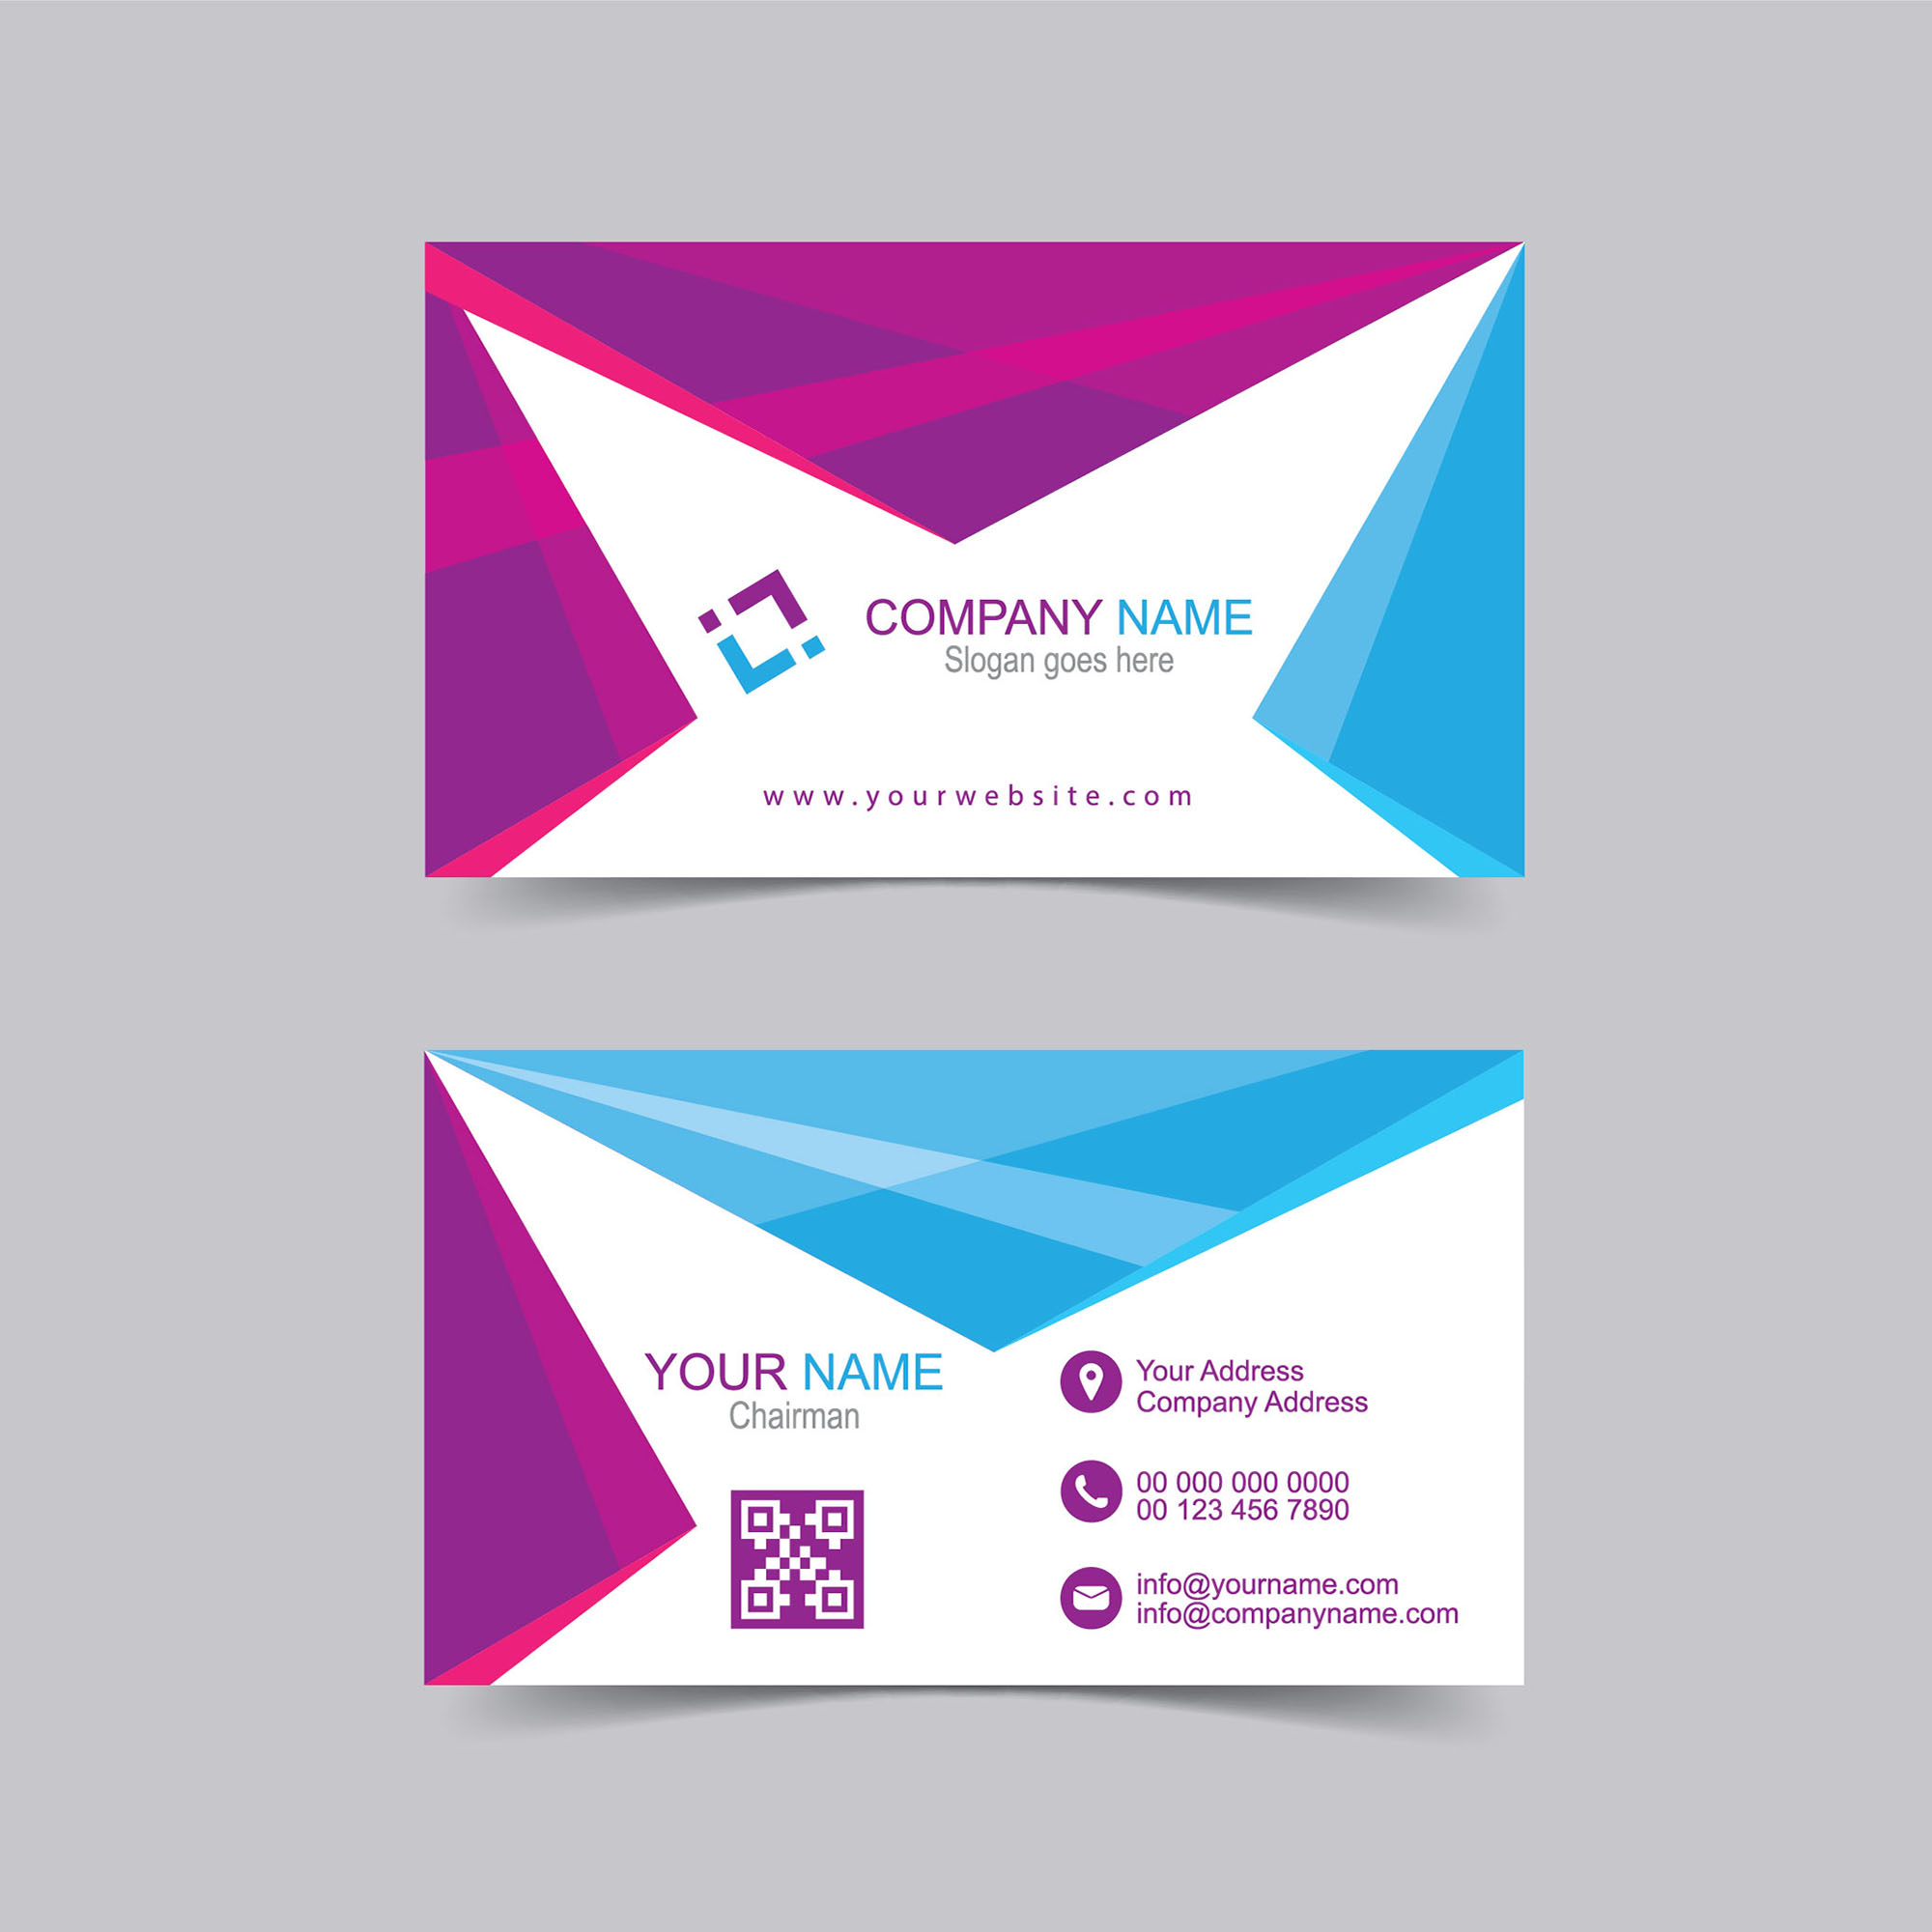 Visiting card vector template free download wisxi business card business cards business card design business card template design templates reheart Images